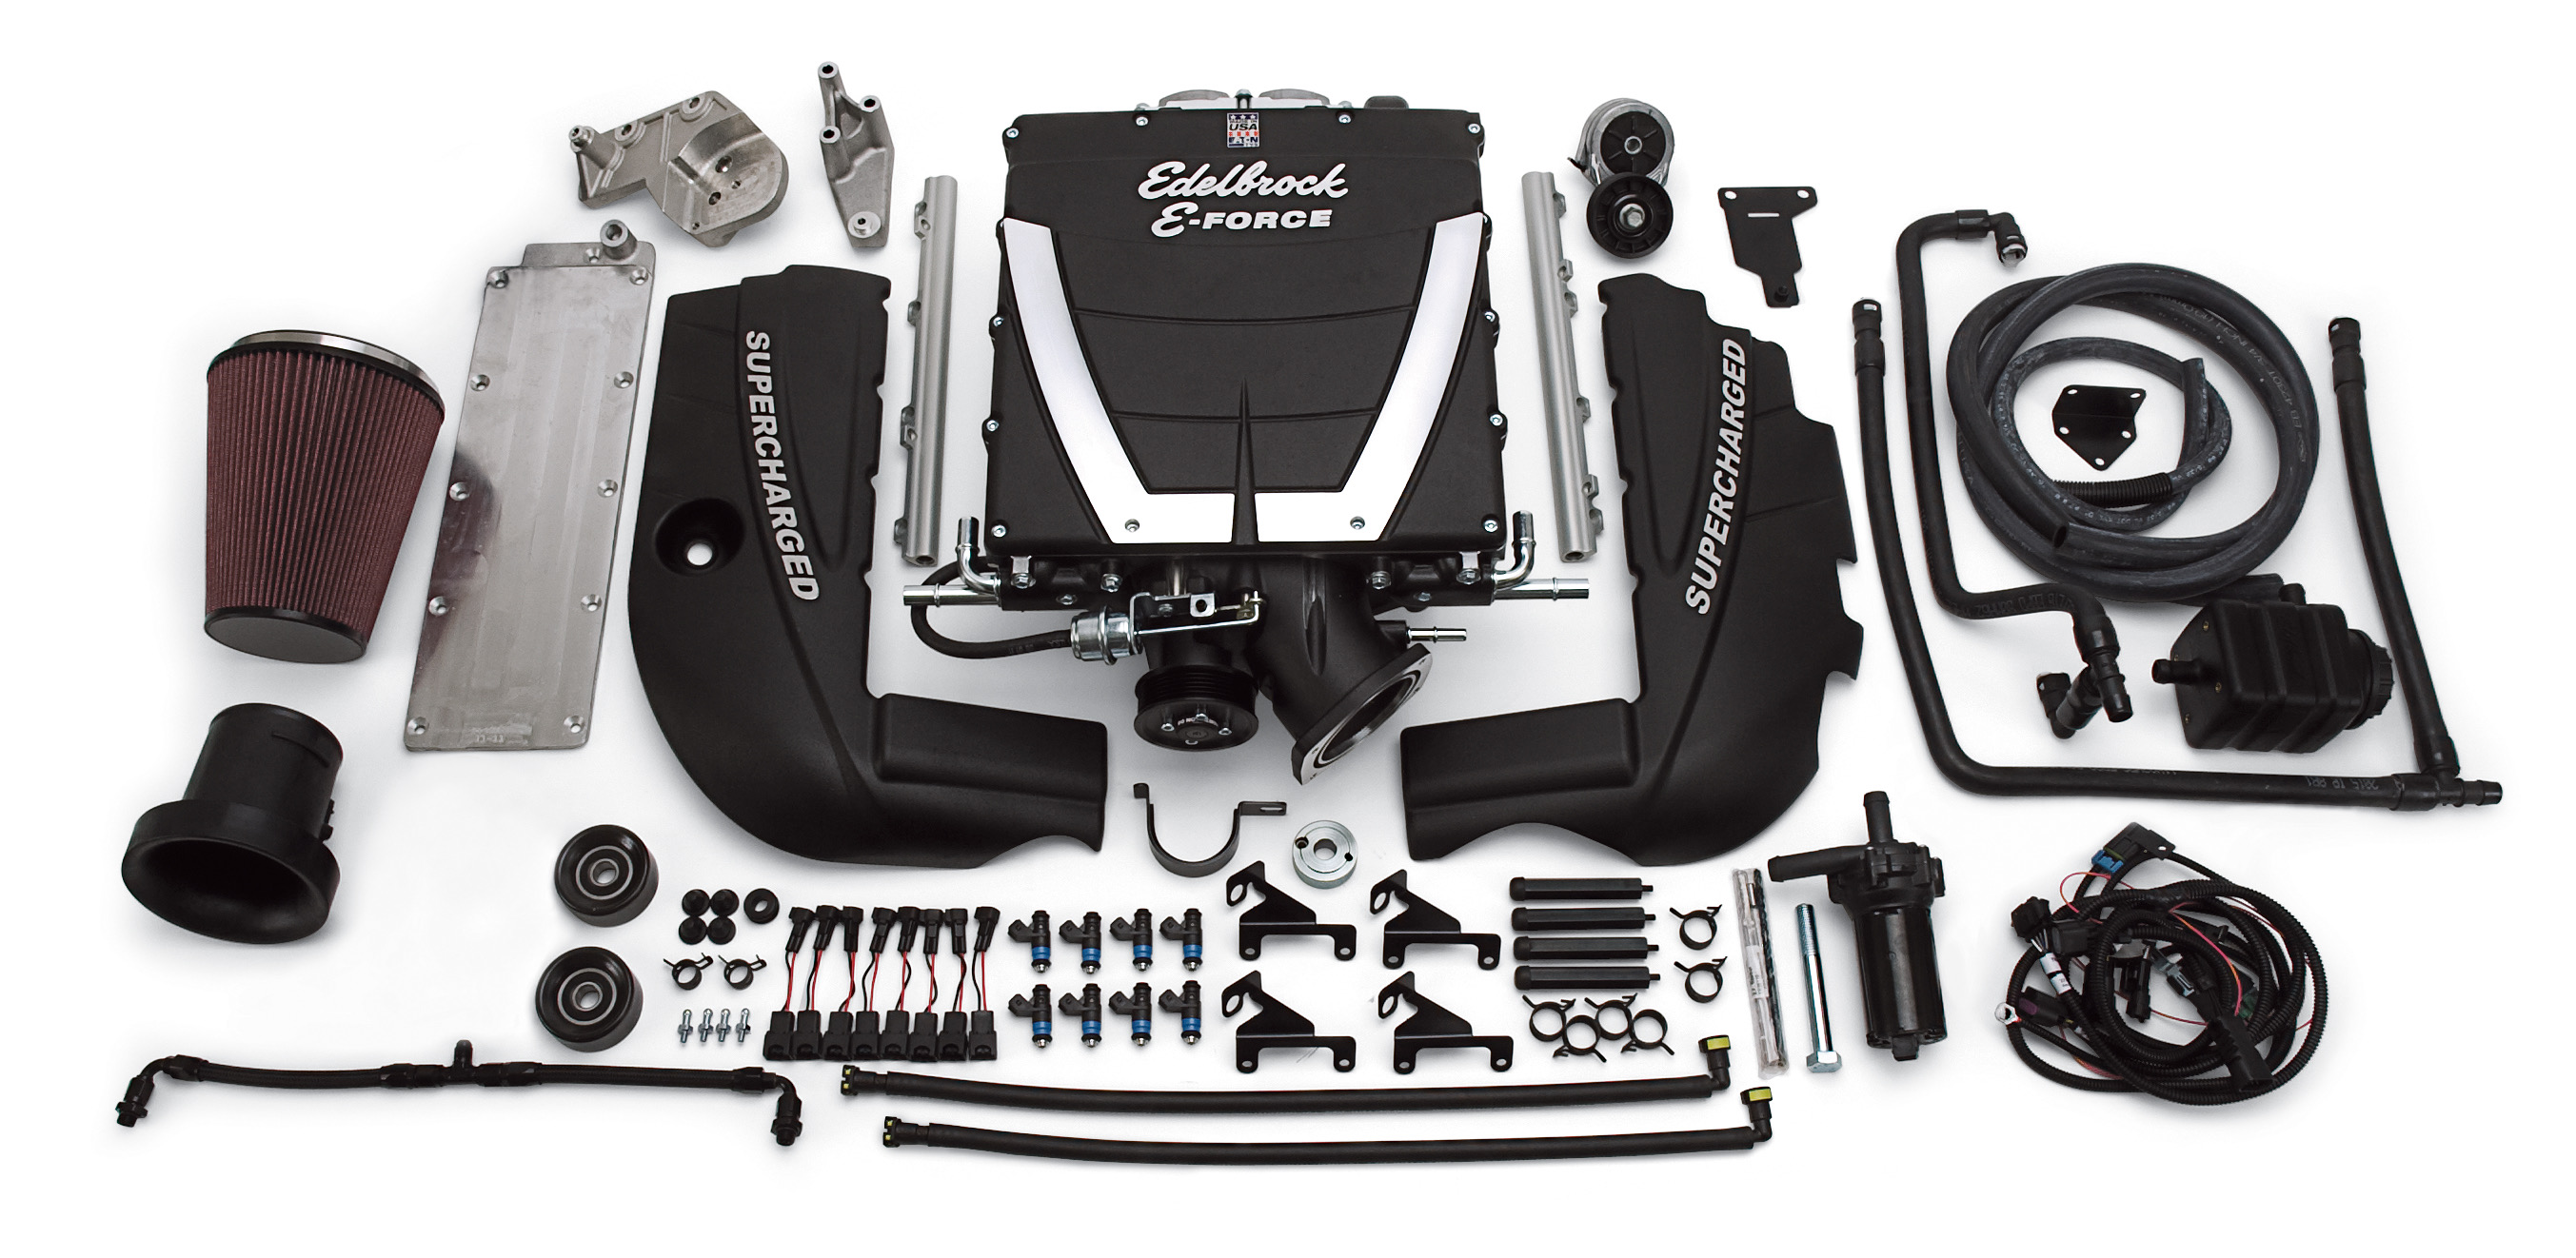 LS engine, Edelbrock now offers nearly 100 parts for LS engines, ClassicCars.com Journal